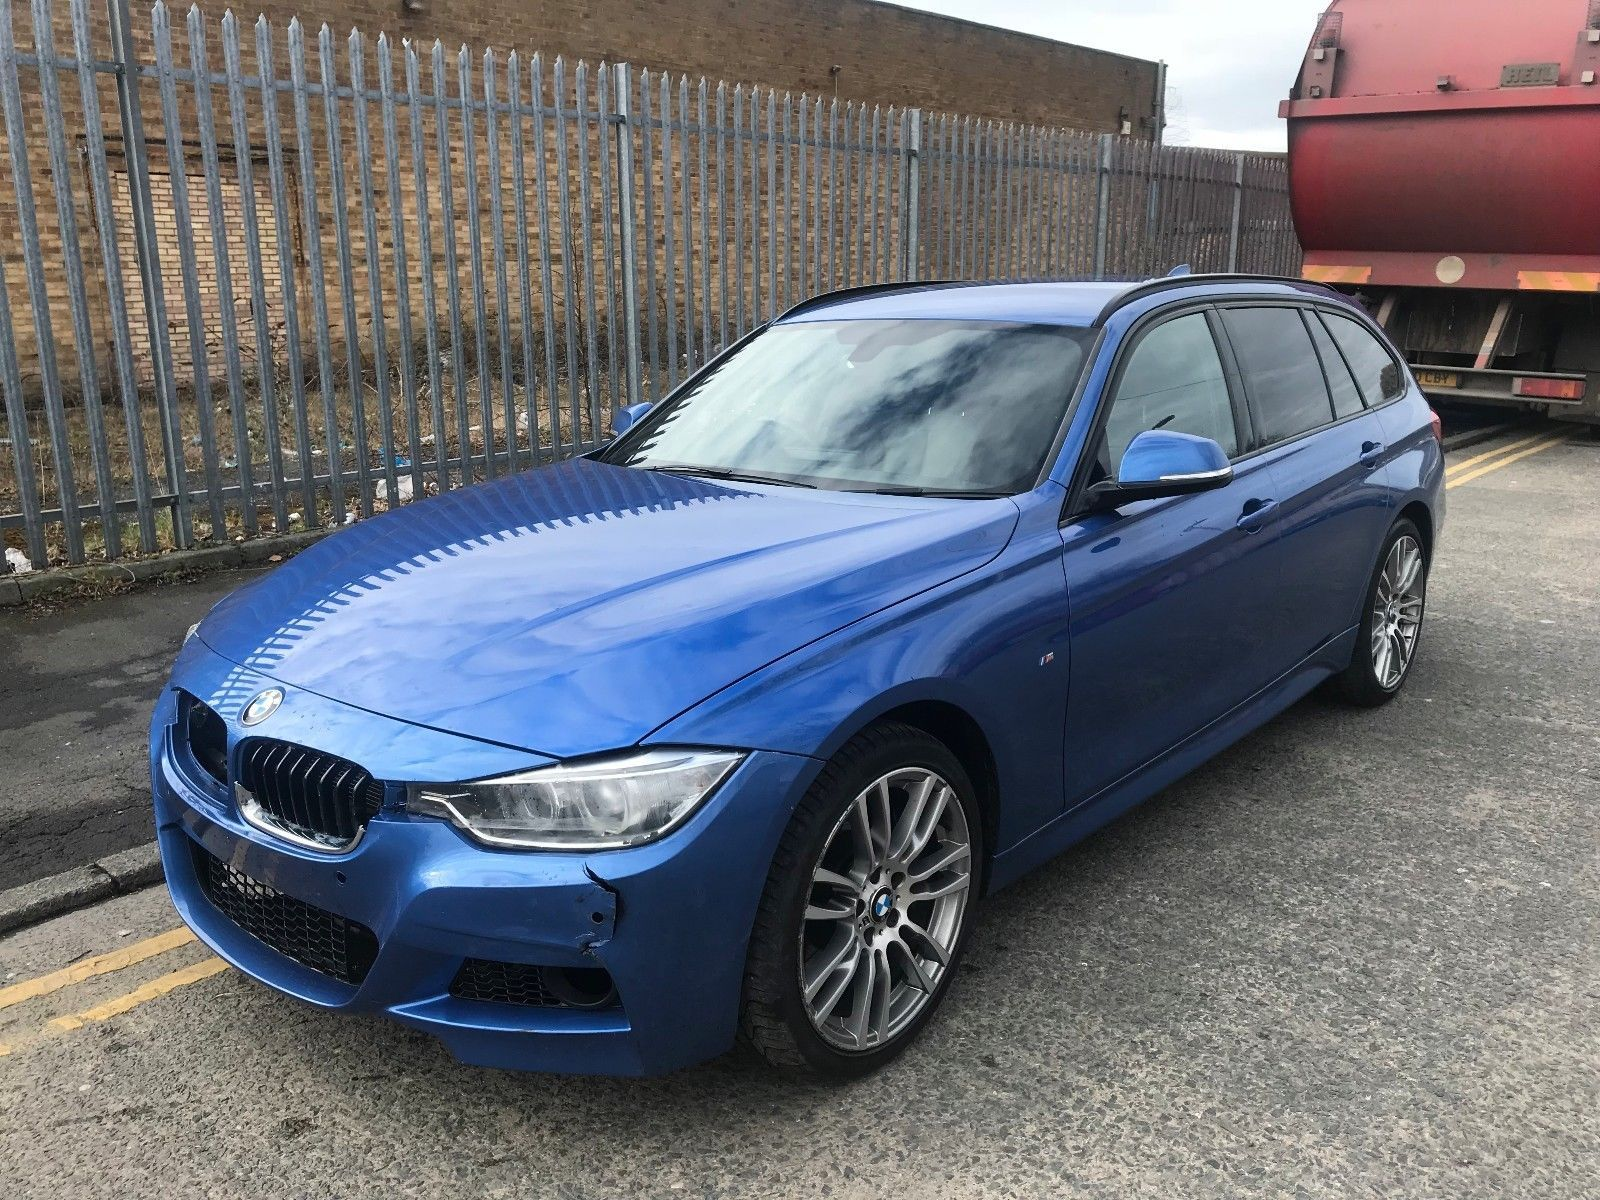 2013 bmw 330d m sport touring auto xdrive s s very light damaged